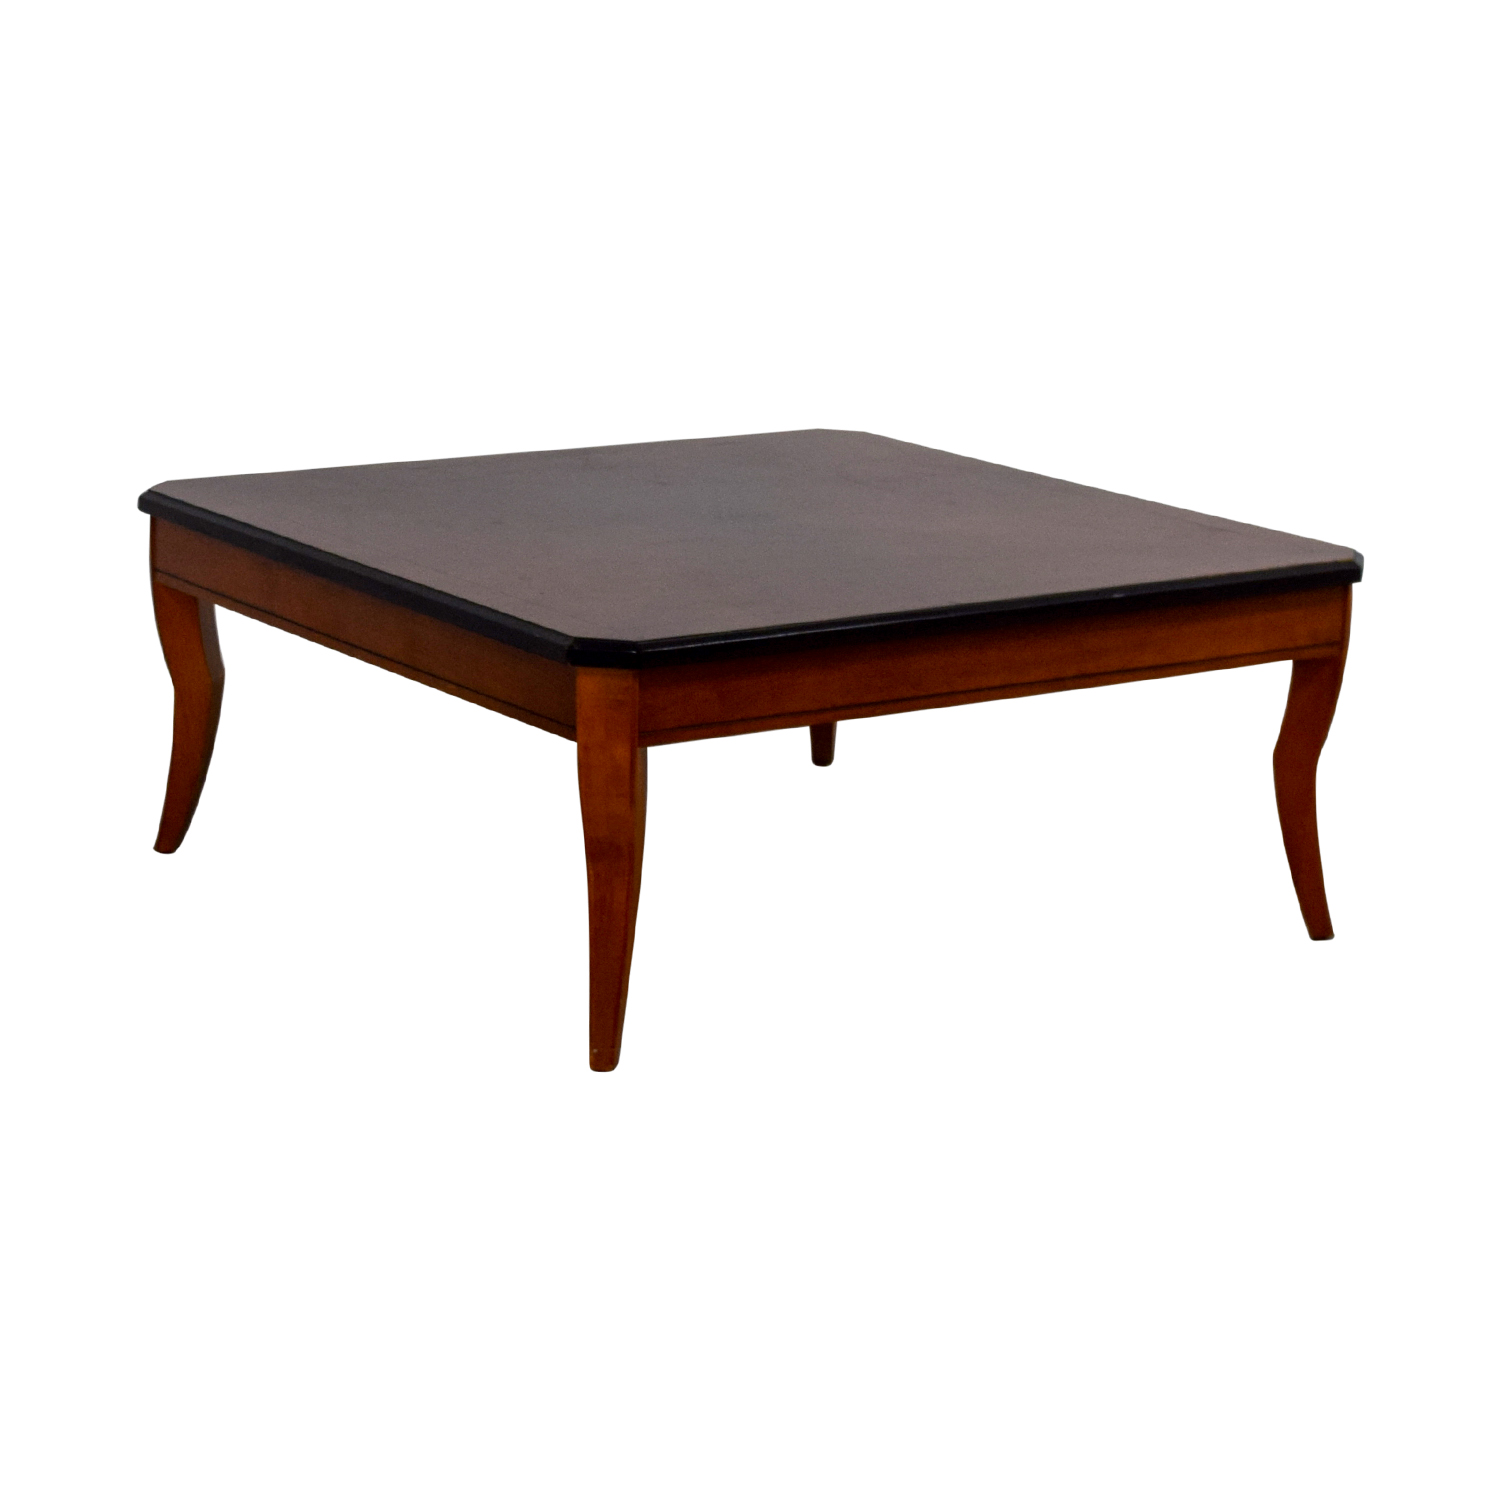 square coffee tables for sale 90 cherry wood square coffee table tables 8206